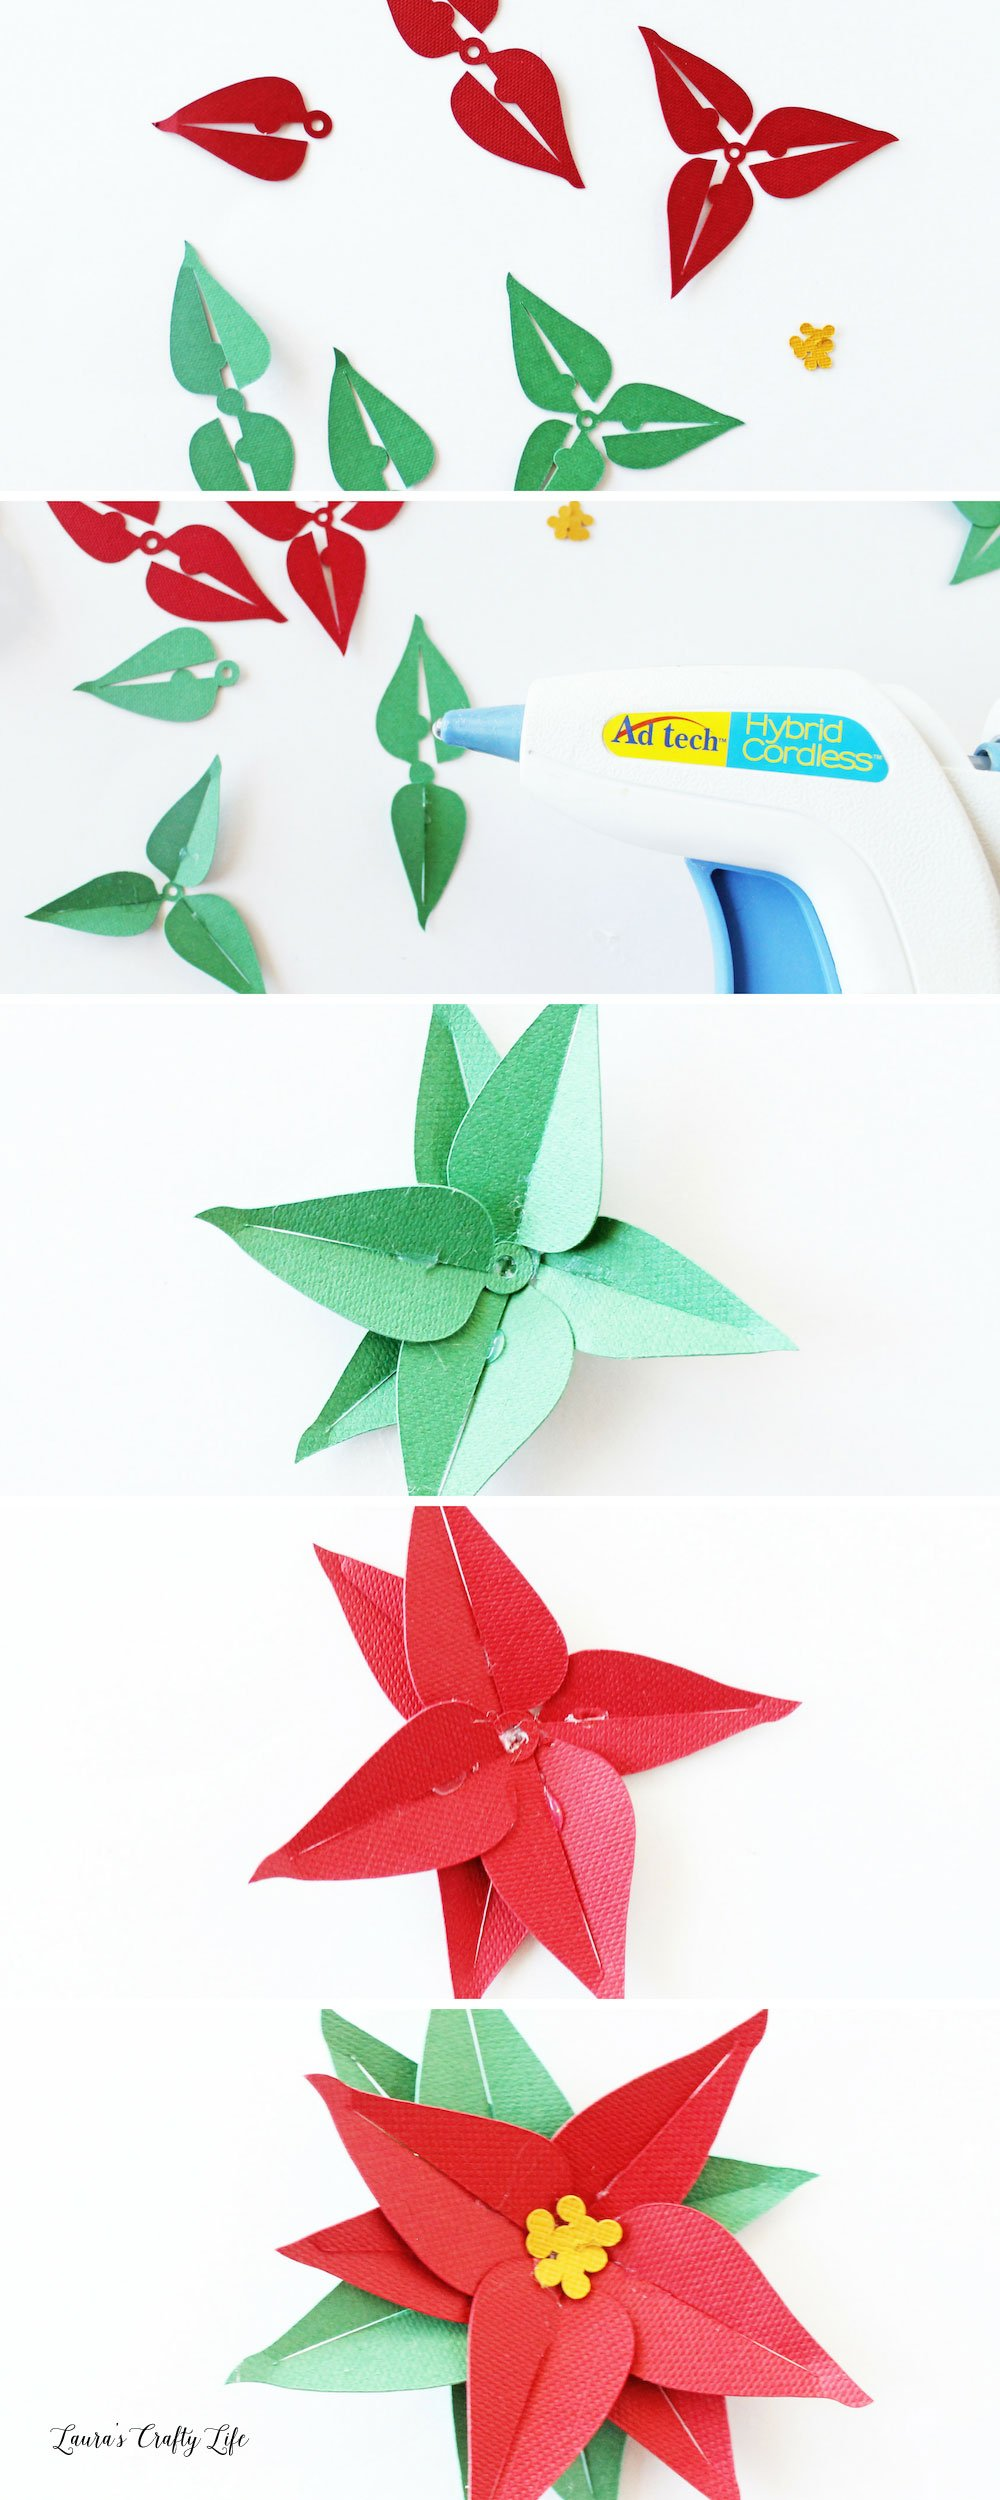 How to create a 3D paper poinsettia